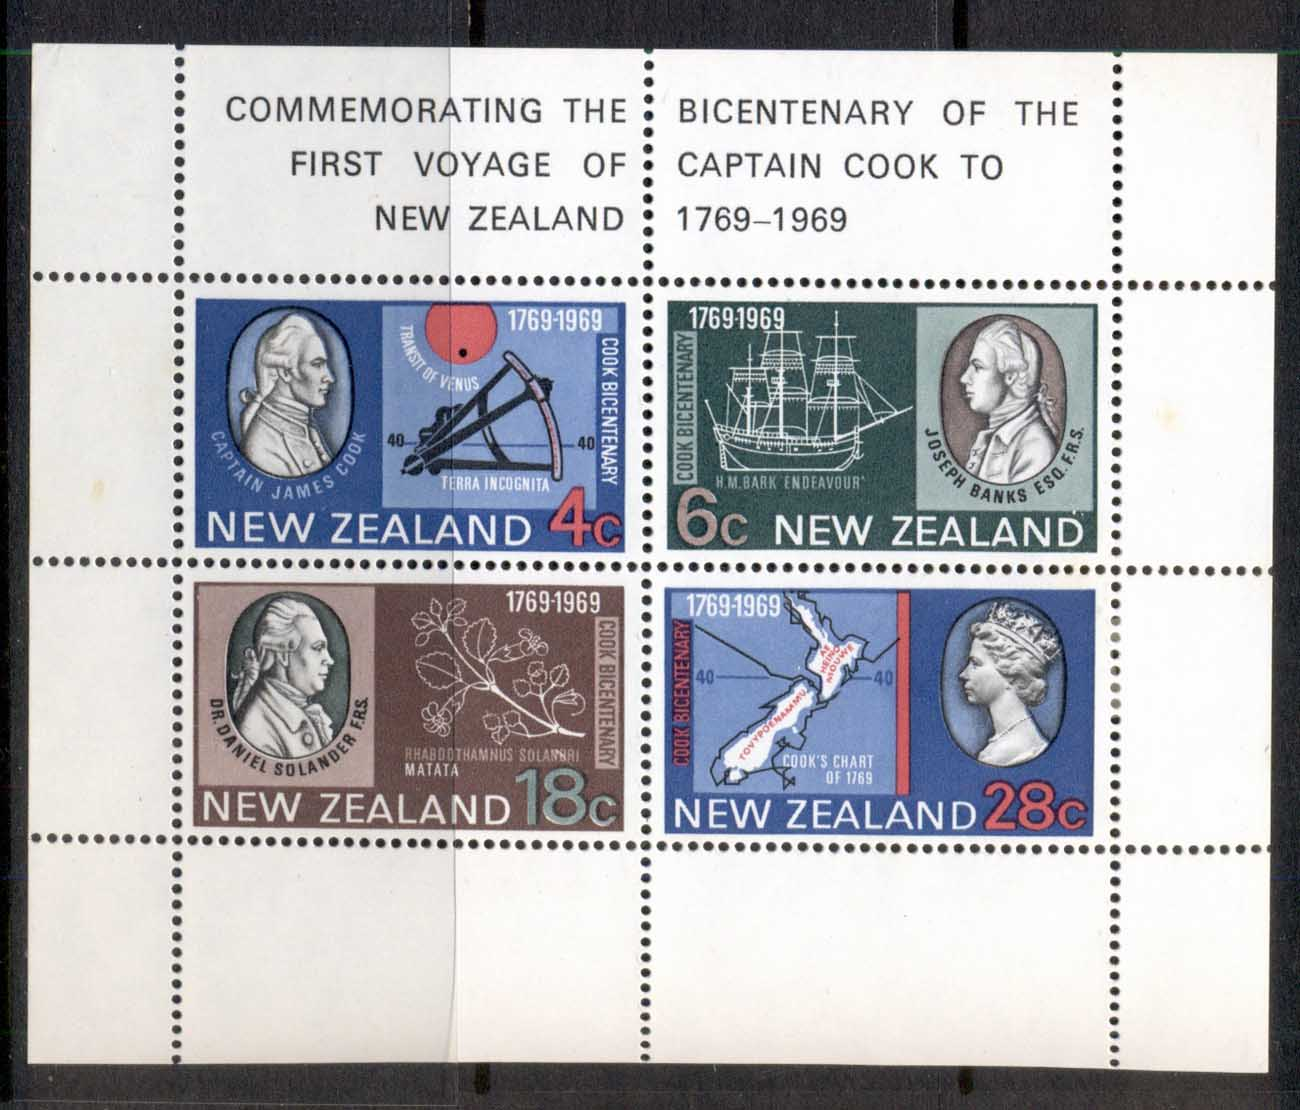 New Zealand 1969 Cook Bicentenary (light tones) MS MUH